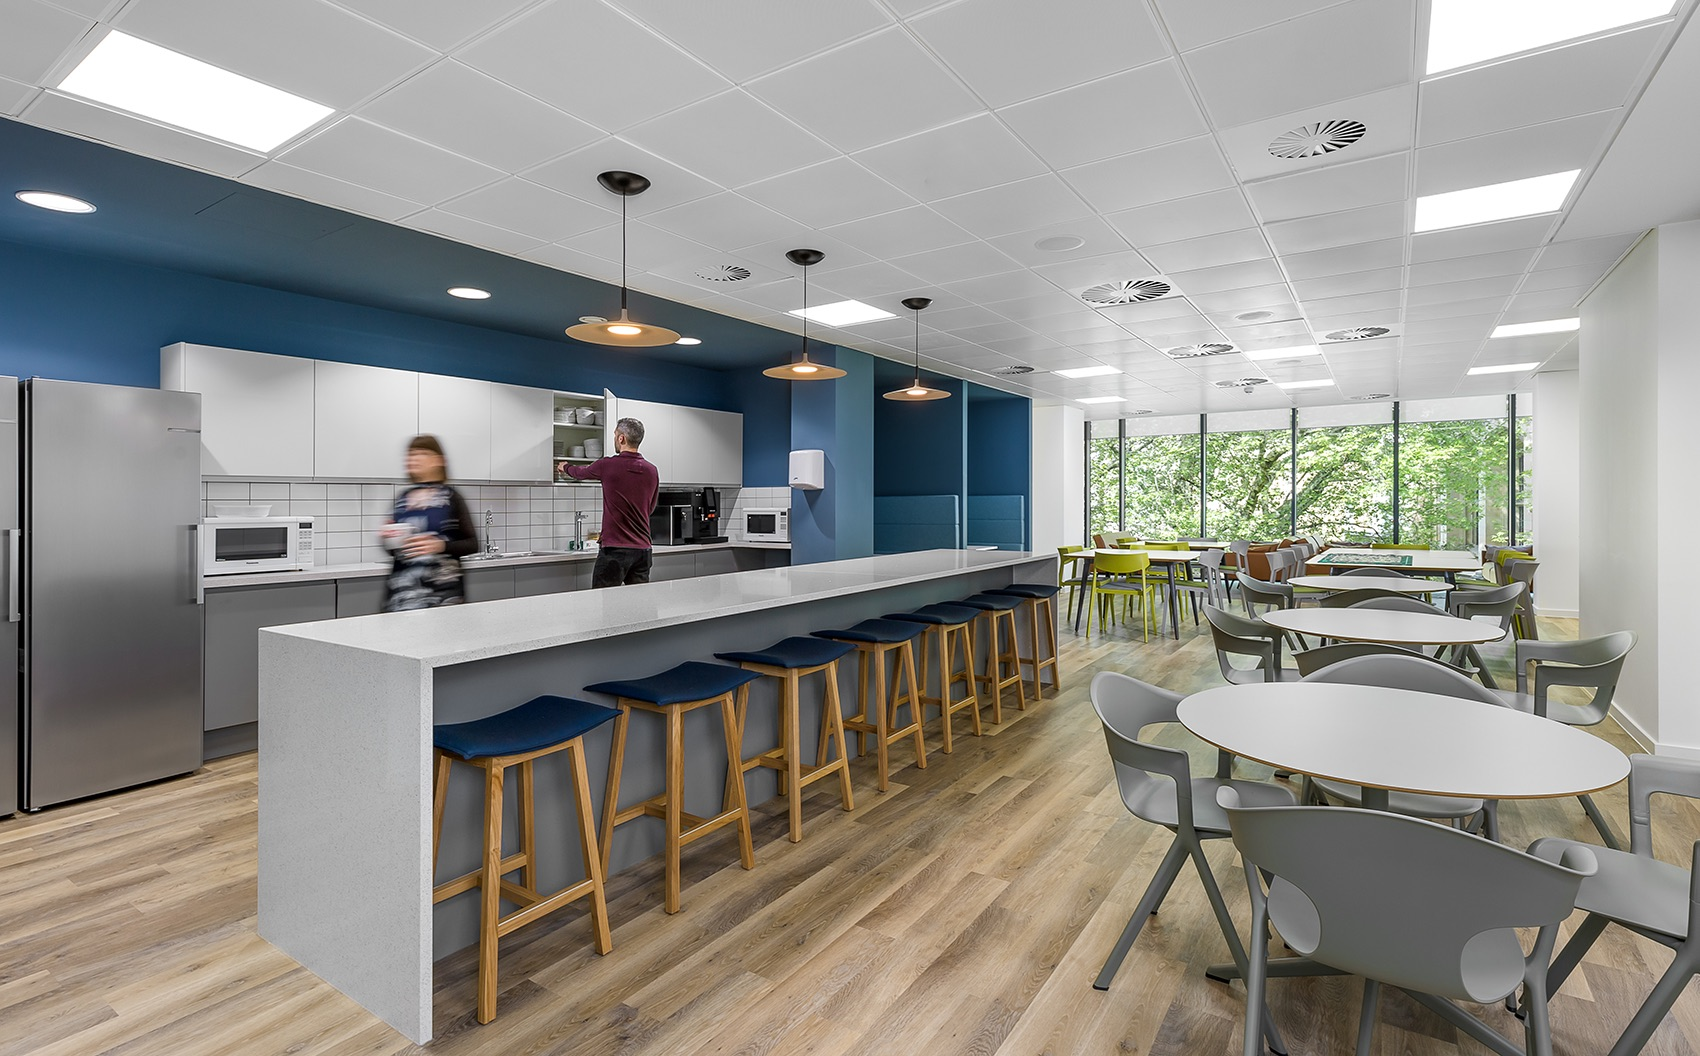 A Look Inside Marks and Clerk's New London Office